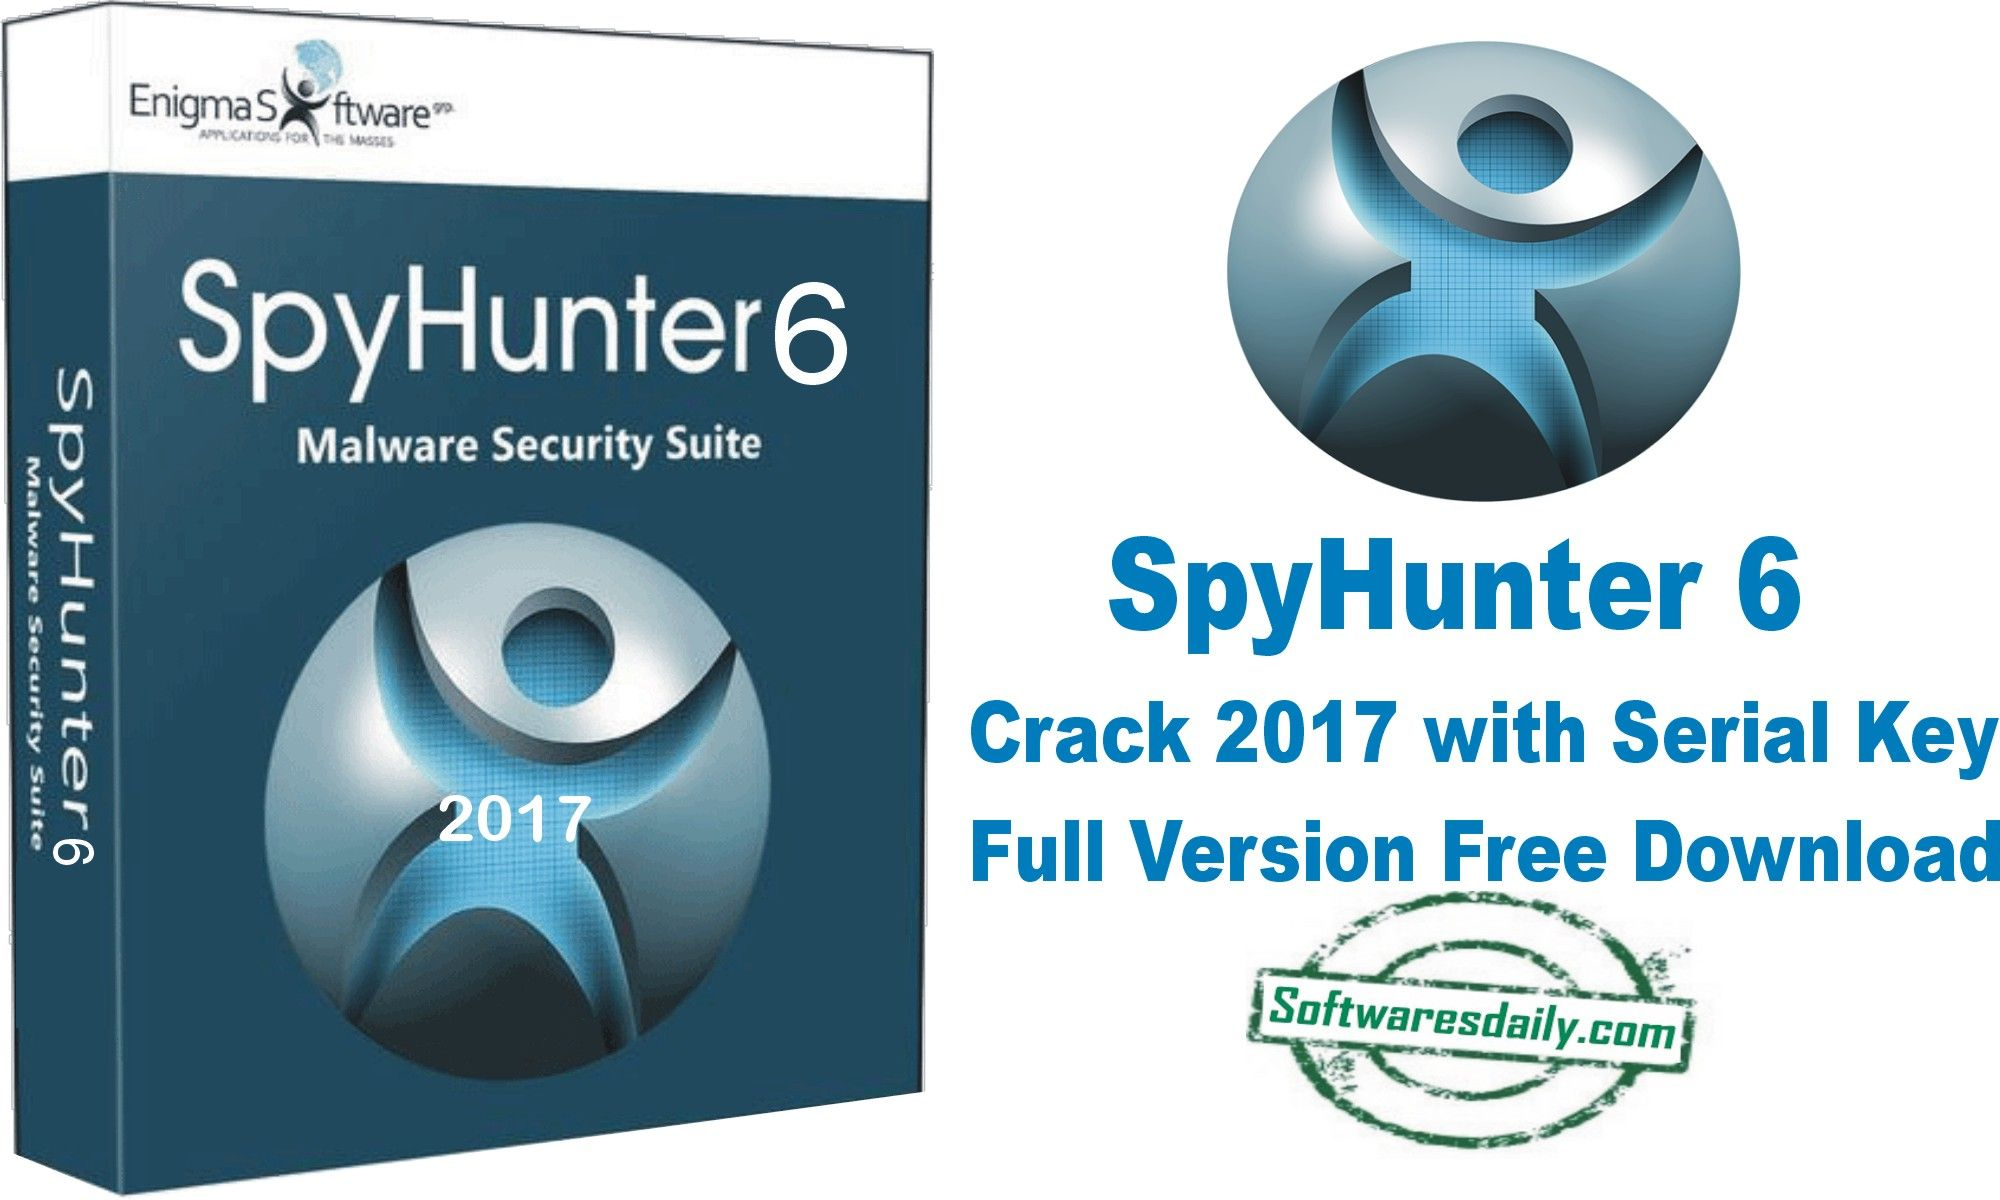 SpyHunter 6 Crack 2017 with Serial Key Full Version Free